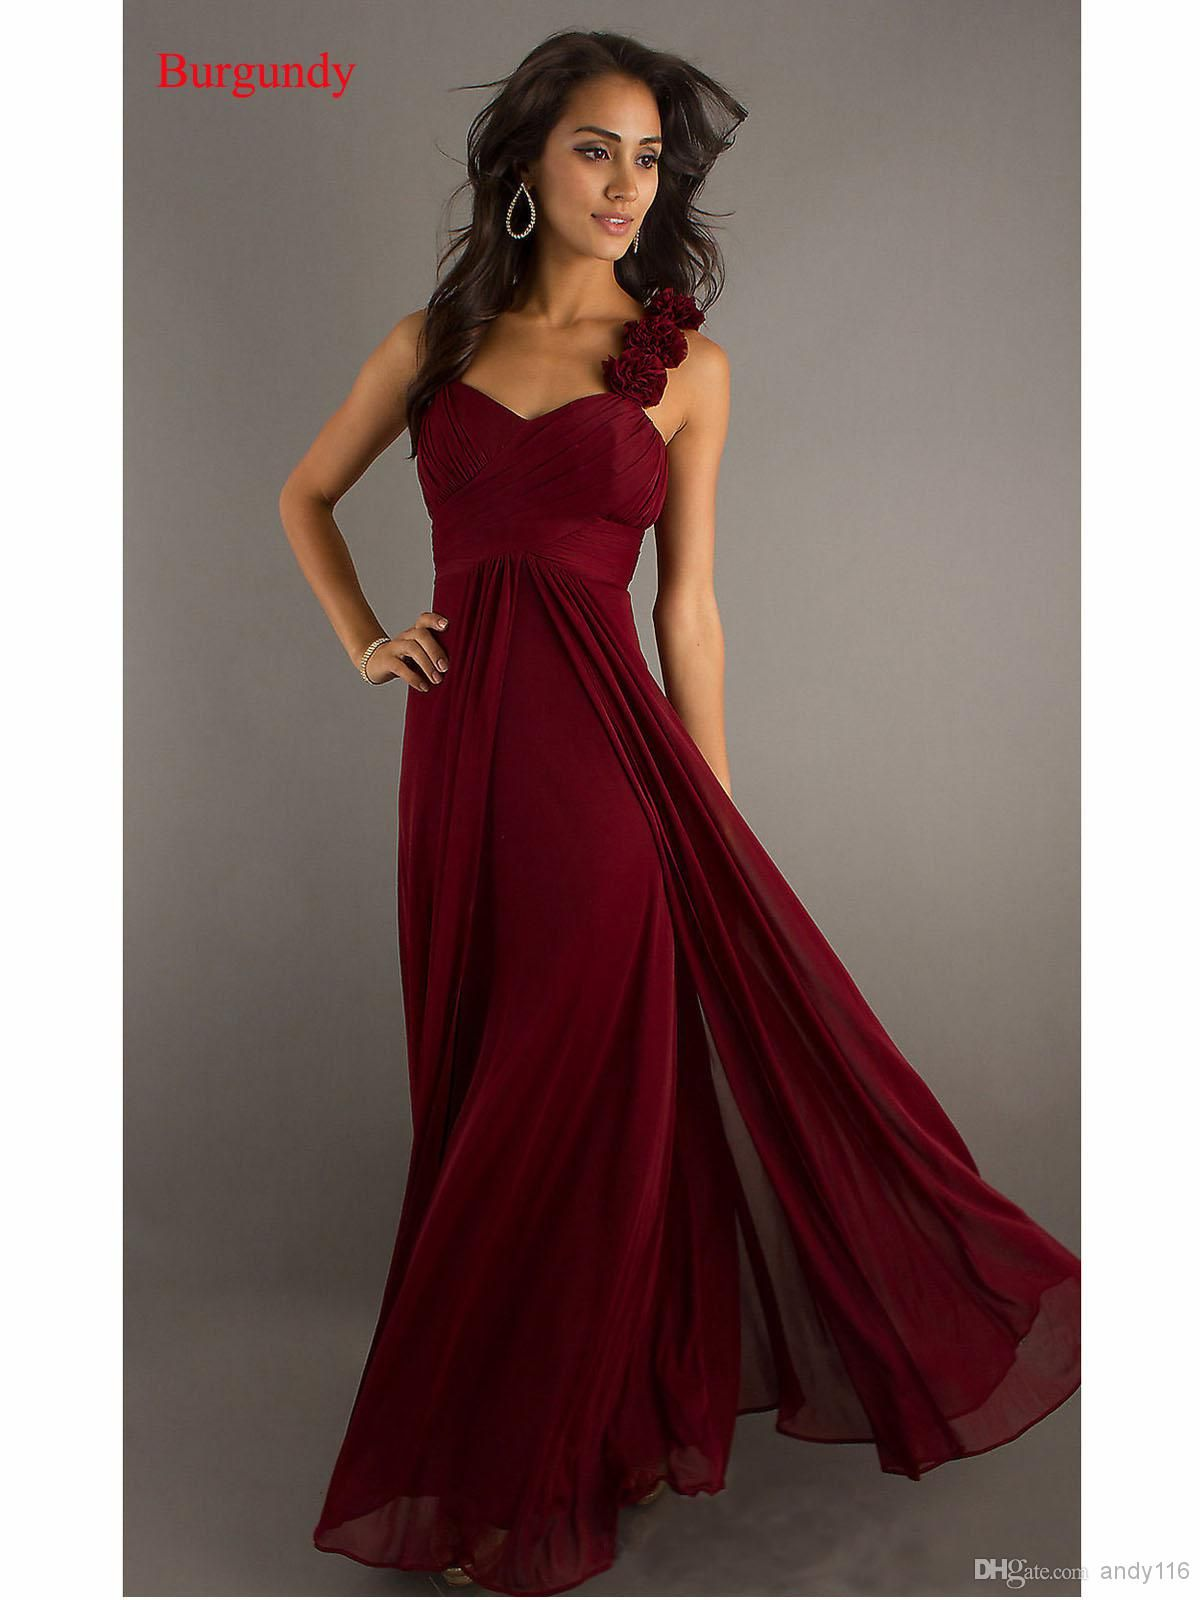 Pretty evening dresses couture pinterest clothes store and